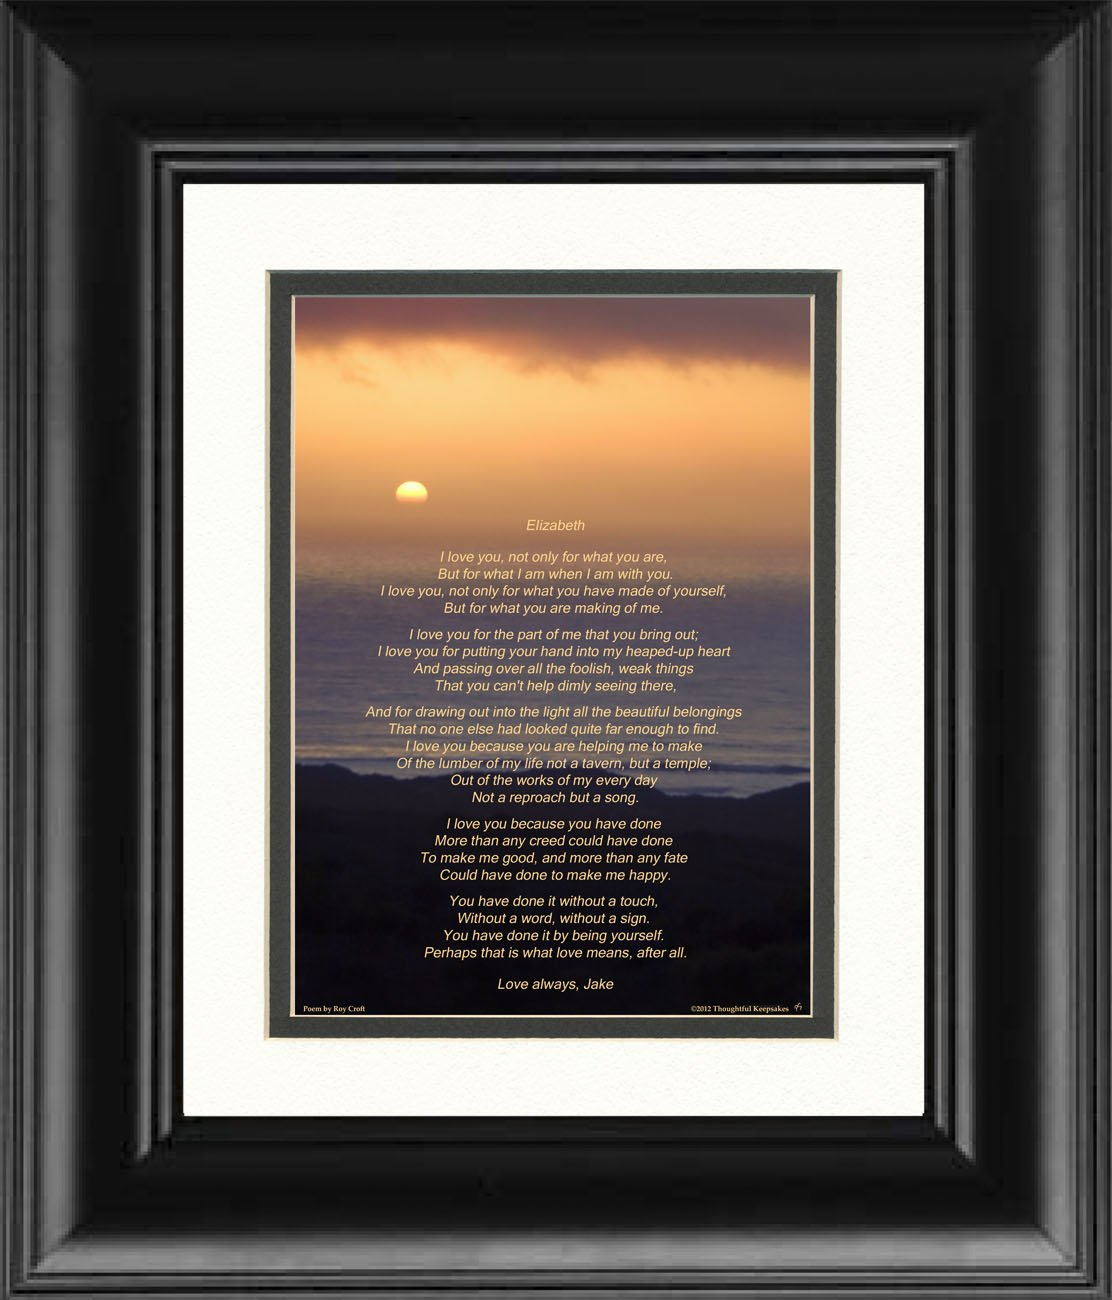 Amazon framed personalized gift for husband wife boyfriend or amazon framed personalized gift for husband wife boyfriend or girlfriend ocean sunset photo with i love you poem by roy croft 8x10 double matted solutioingenieria Image collections